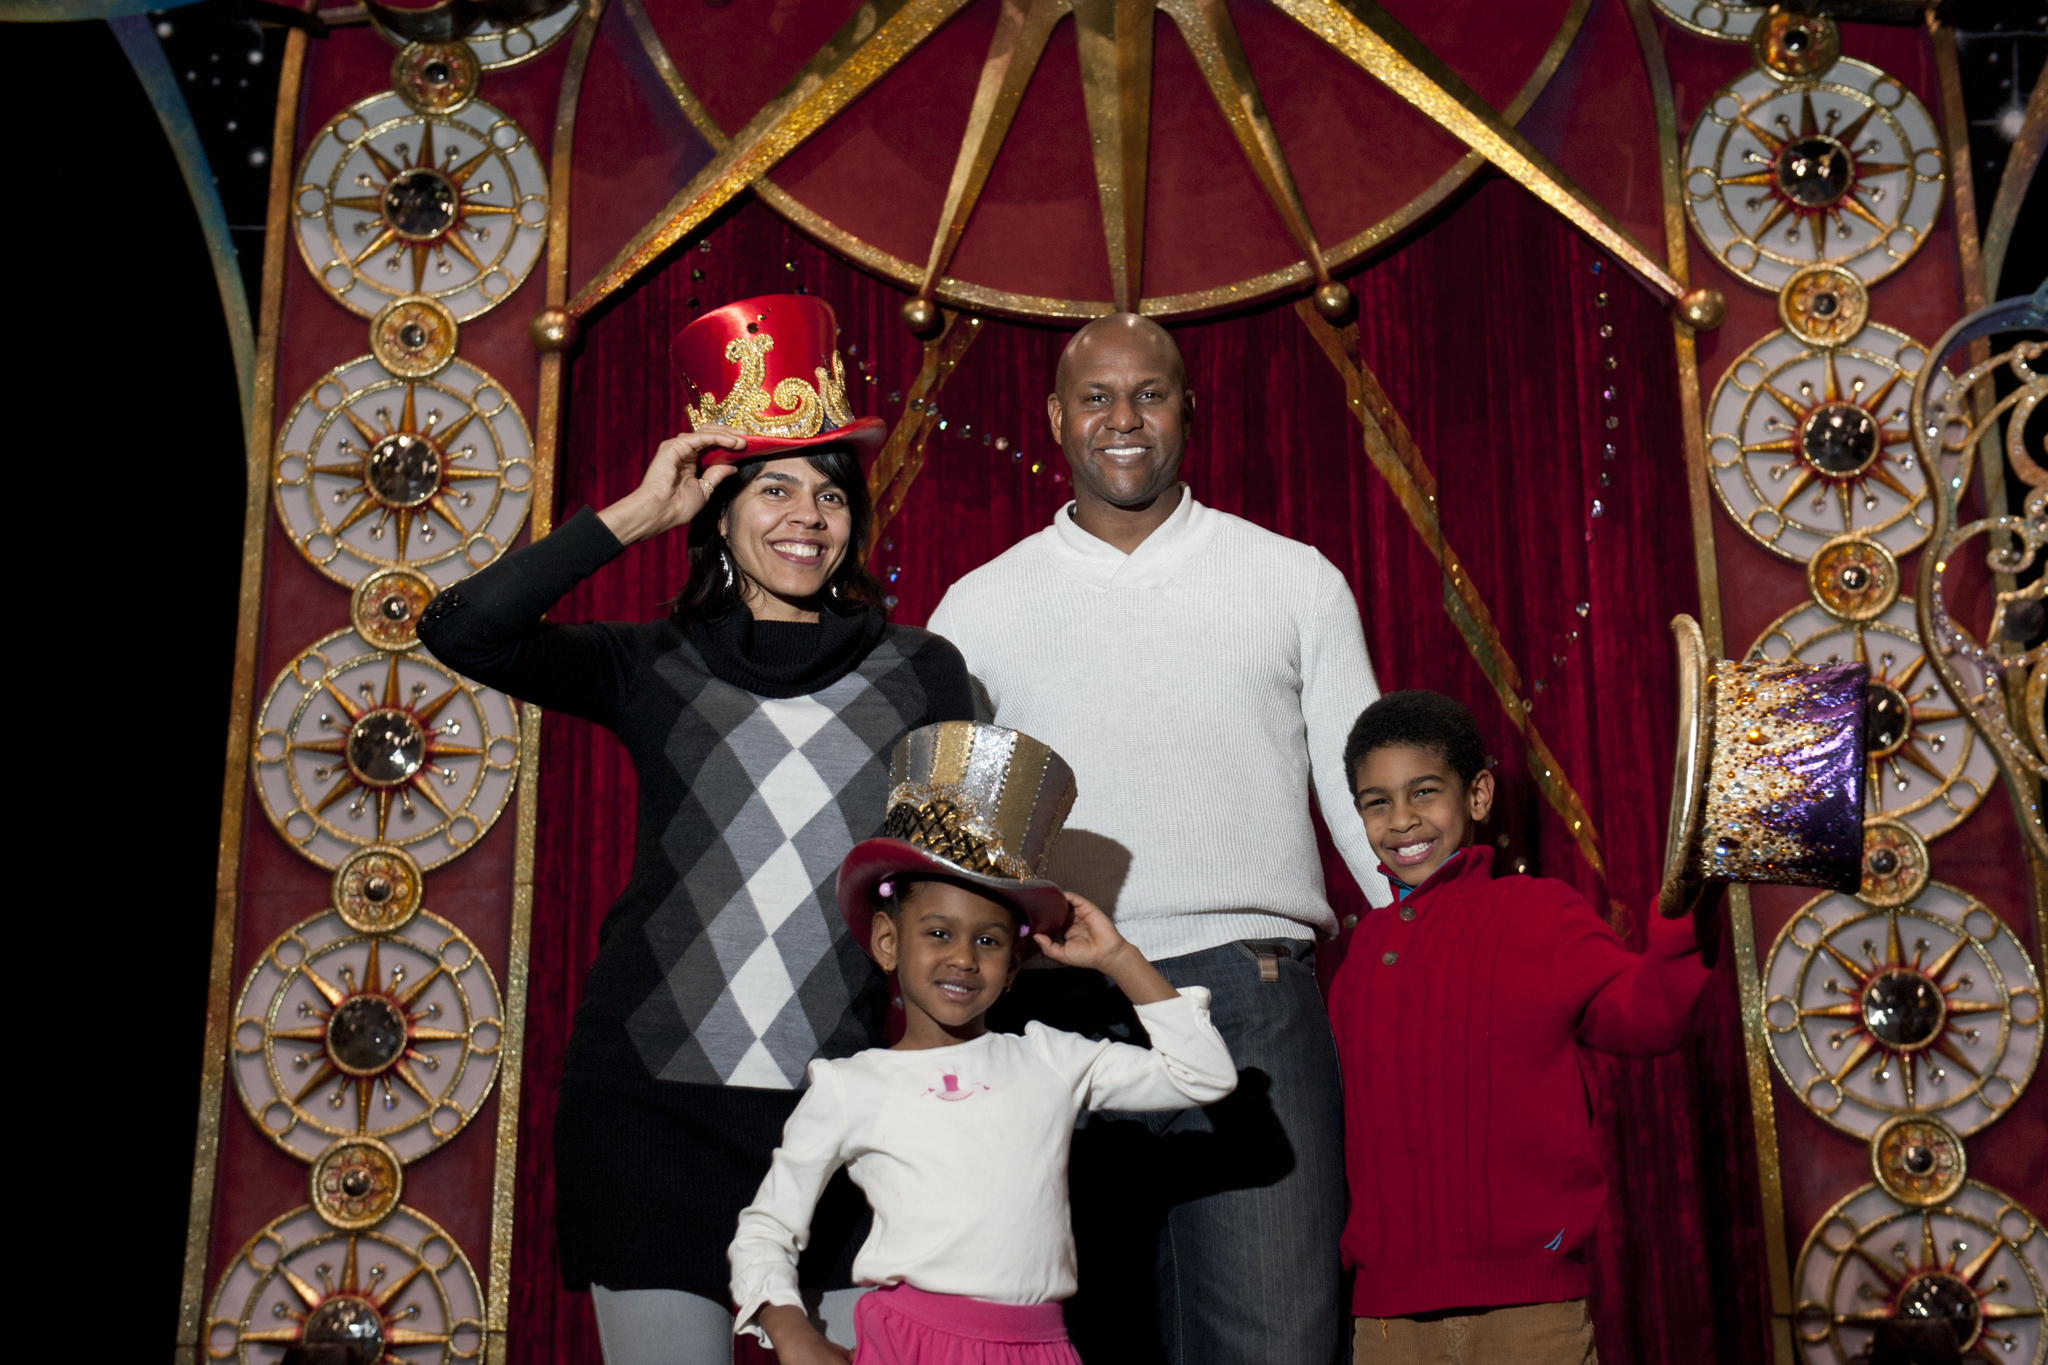 Family Portrait: Ringmaster Johnathan Lee Iverson